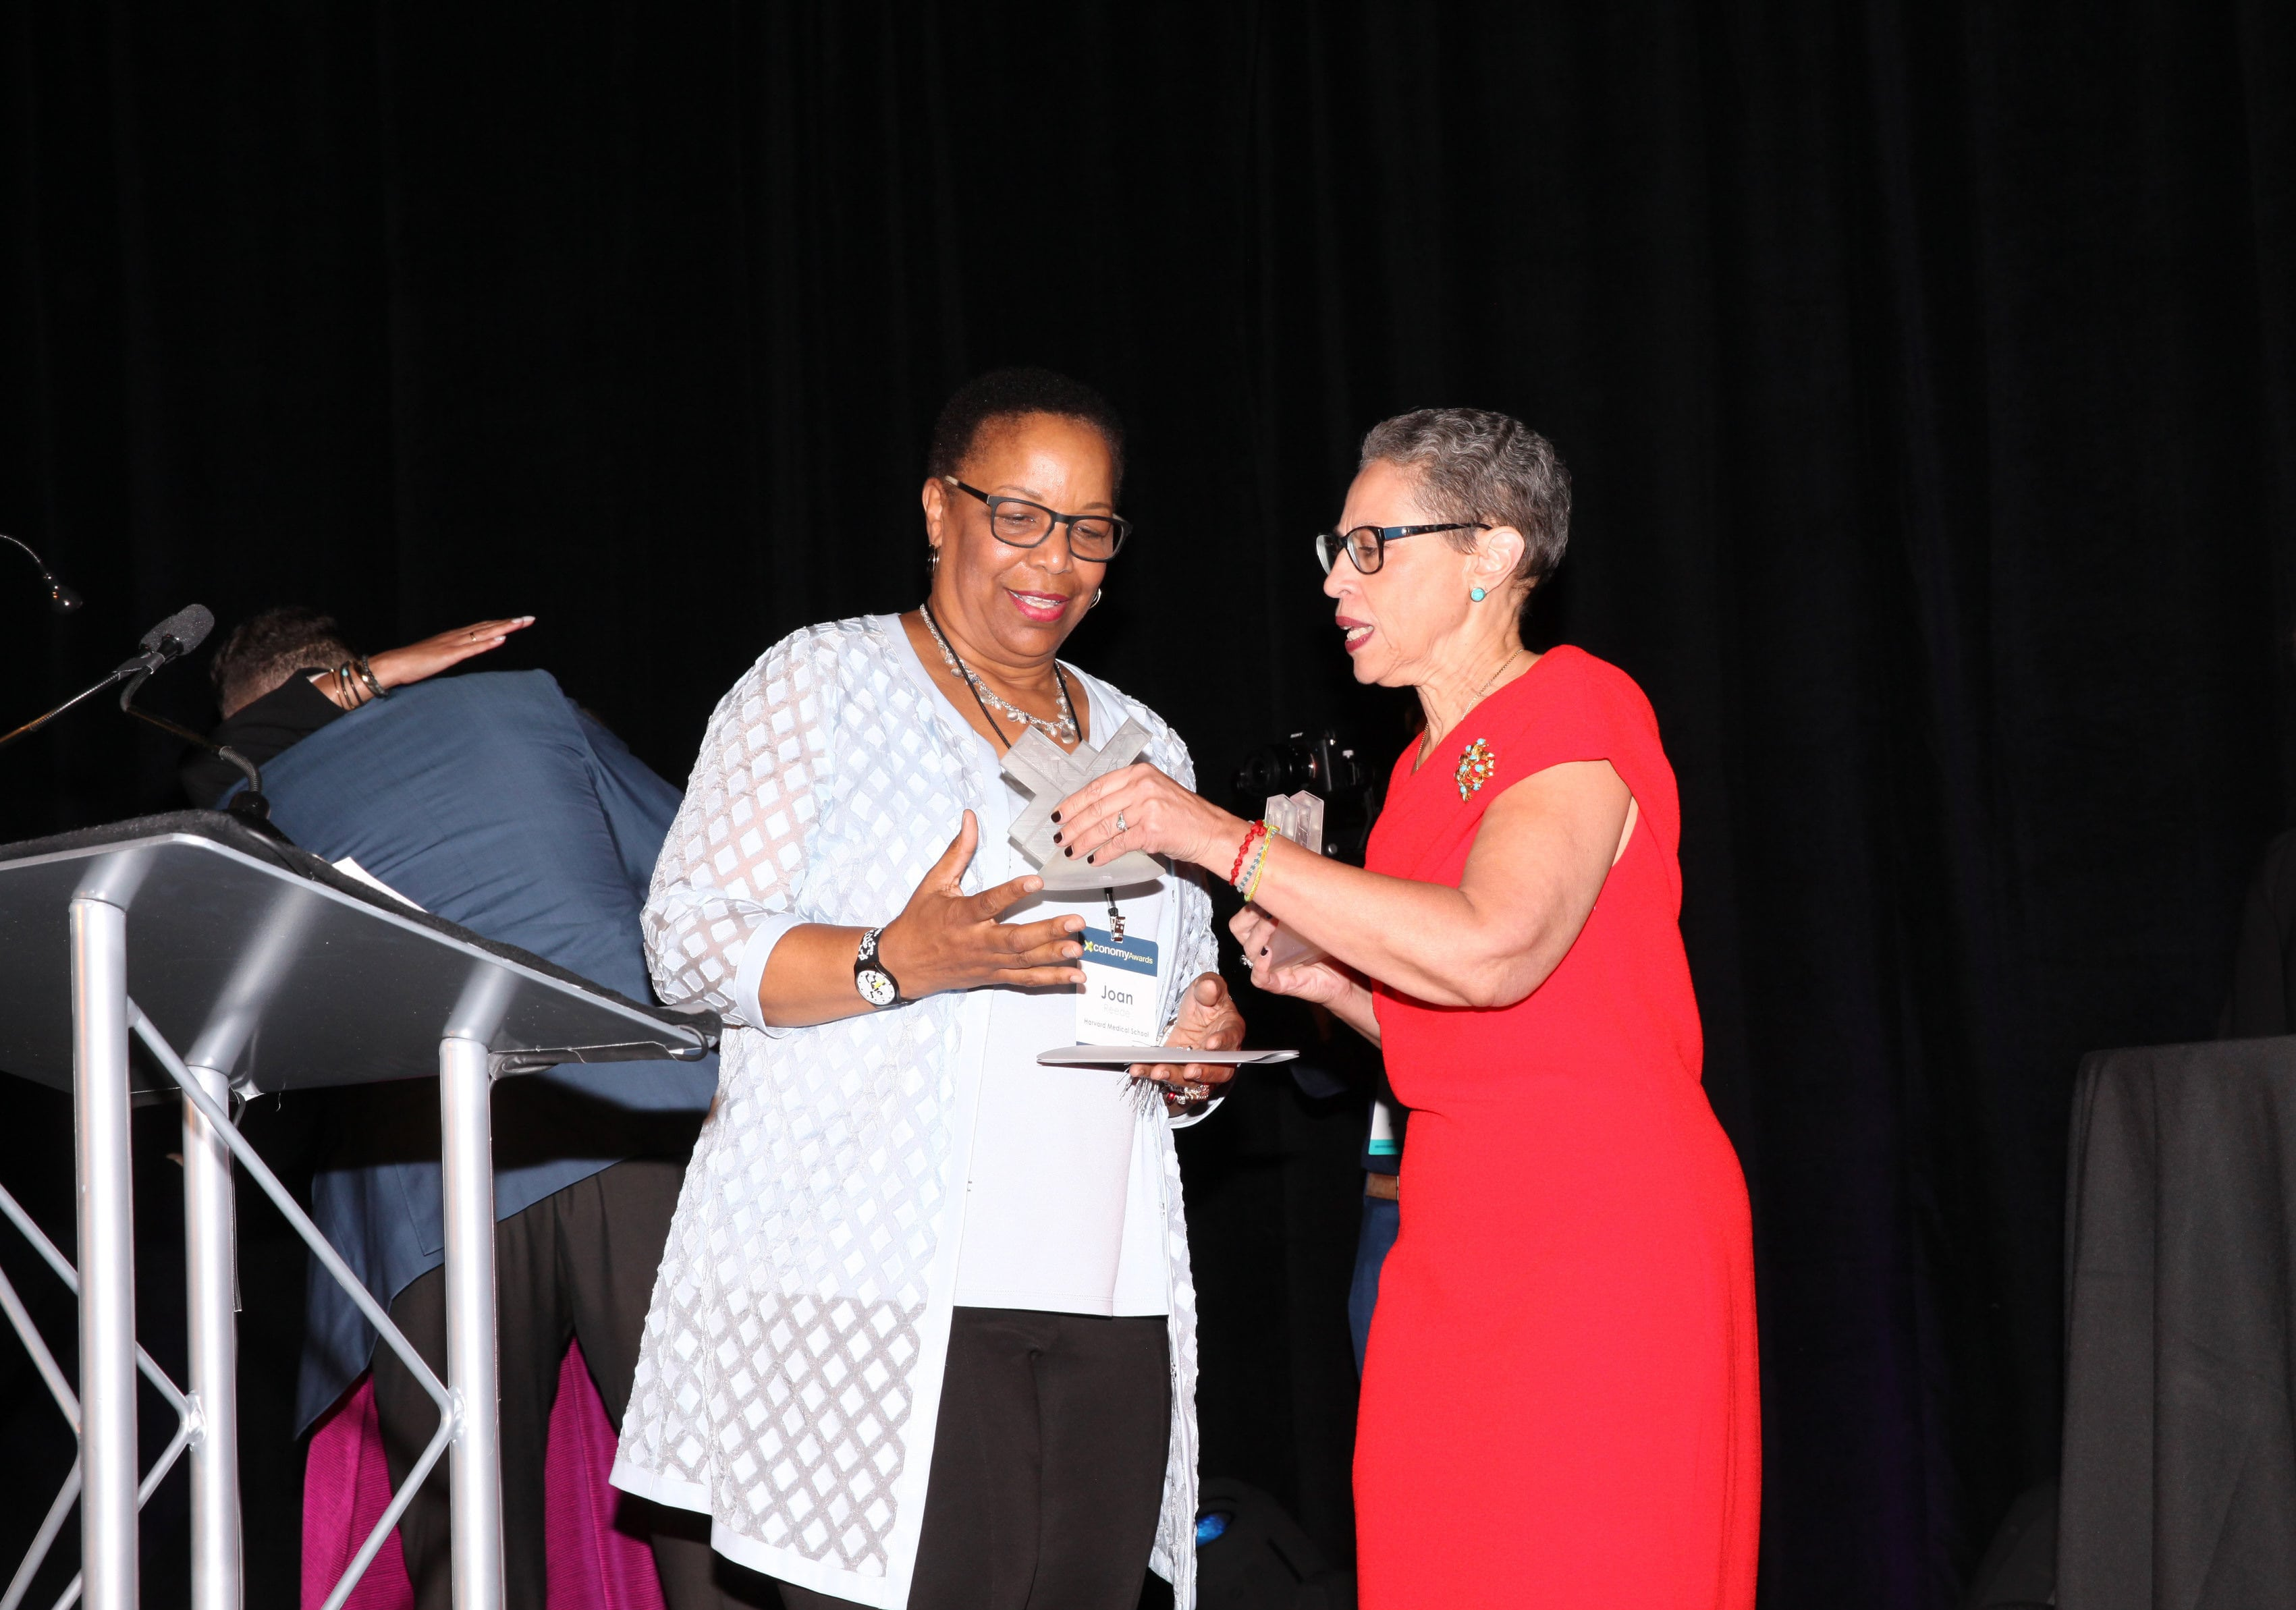 Joan Reede took home one of the Commitment to Diversity Awards.